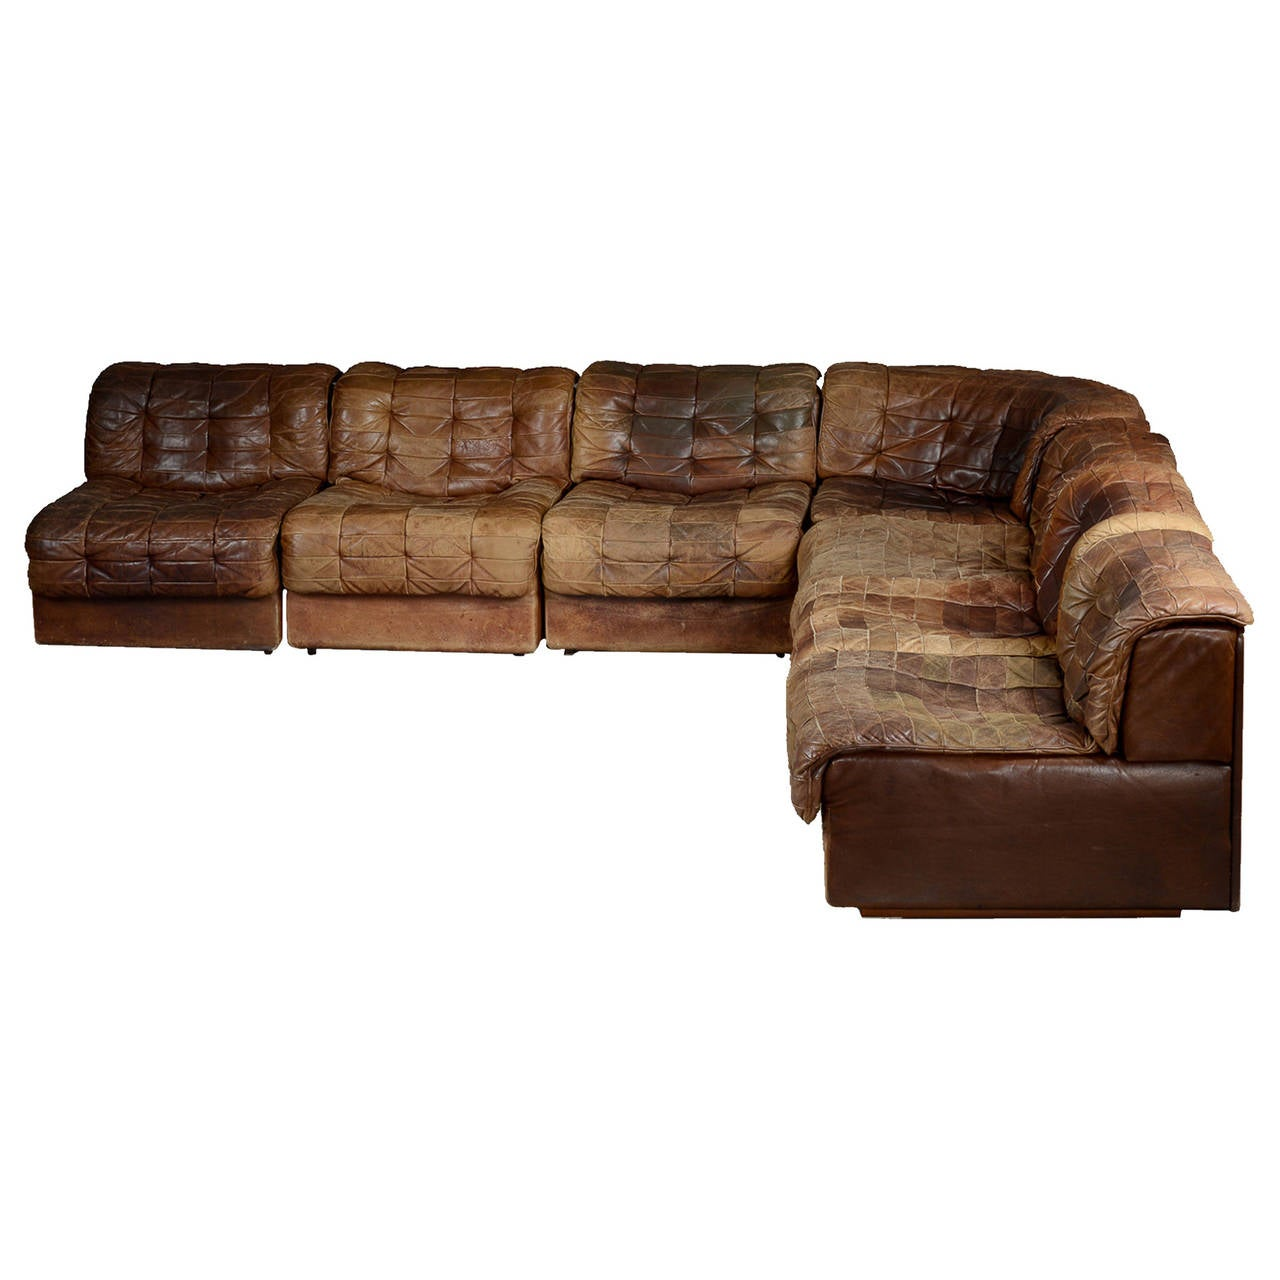 seven section leather patchwork sofa by de sede at 1stdibs. Black Bedroom Furniture Sets. Home Design Ideas